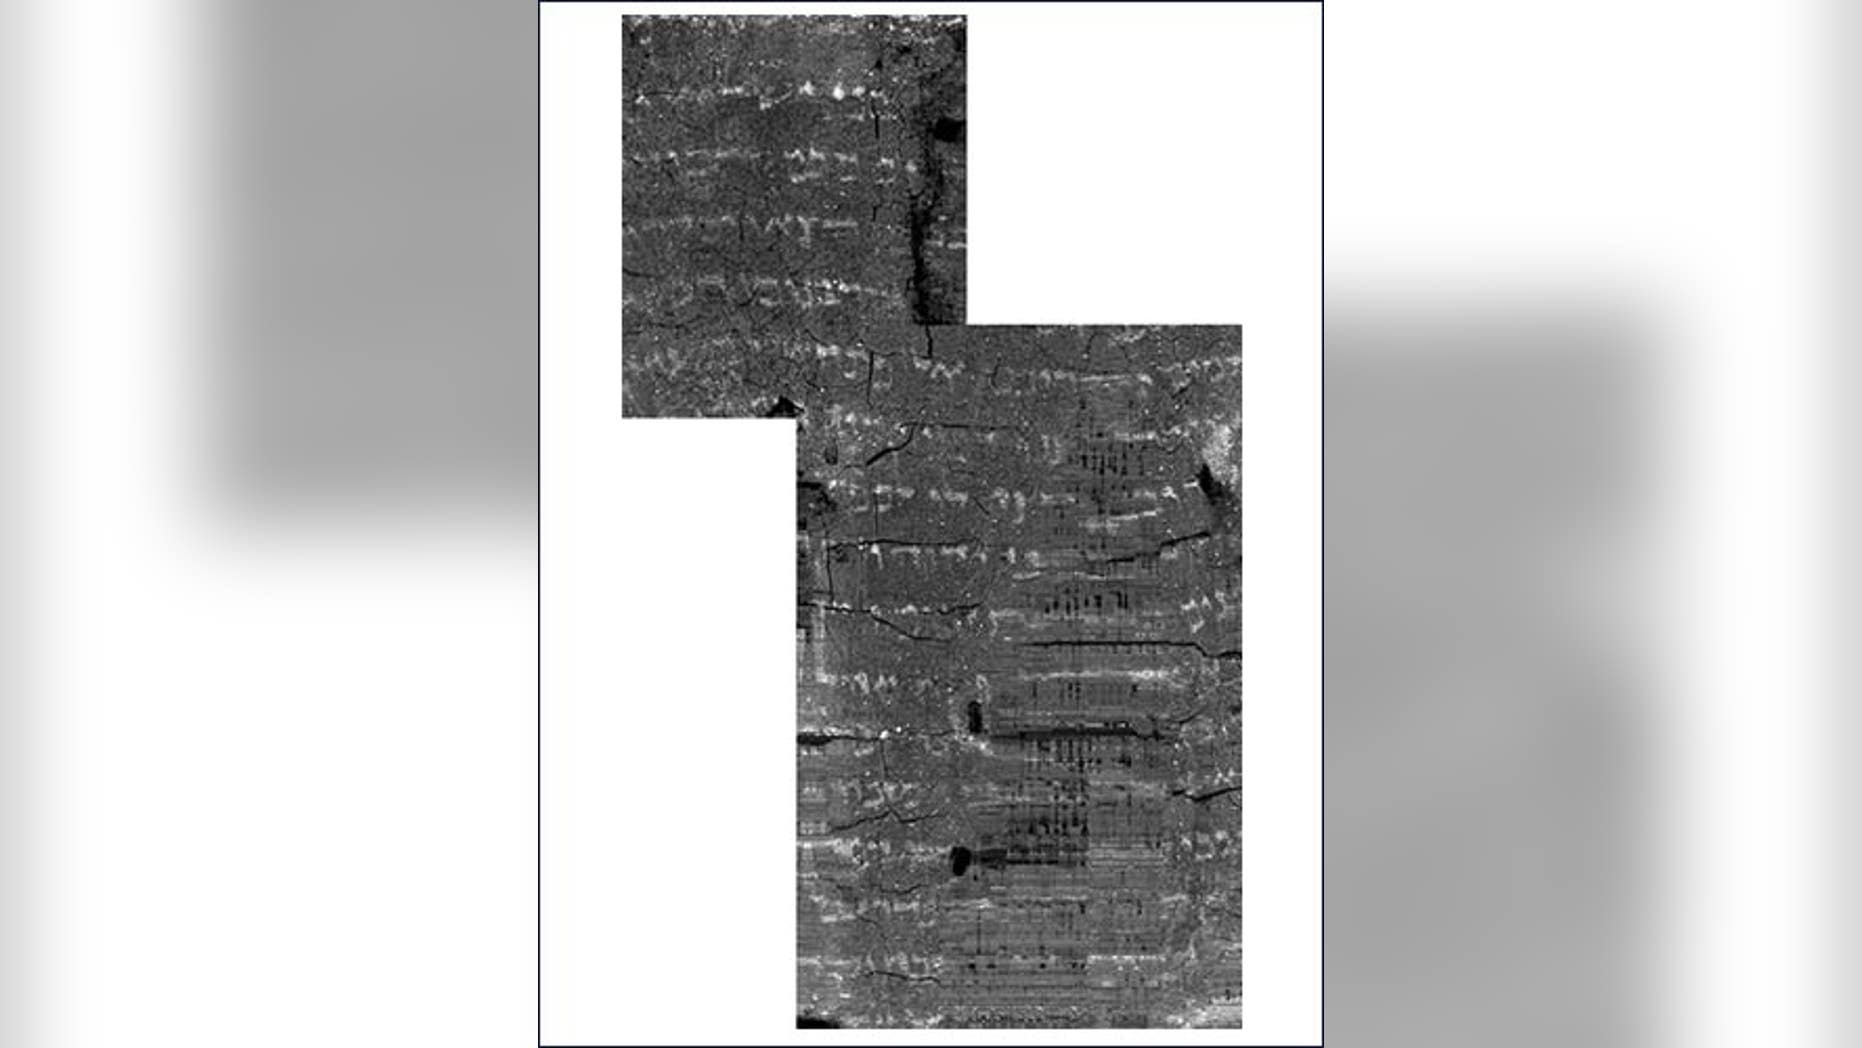 Scroll fragment as imaged in The Lunder Family Dead Sea Scrolls Conservation Center, Israel Antiquities Authority.